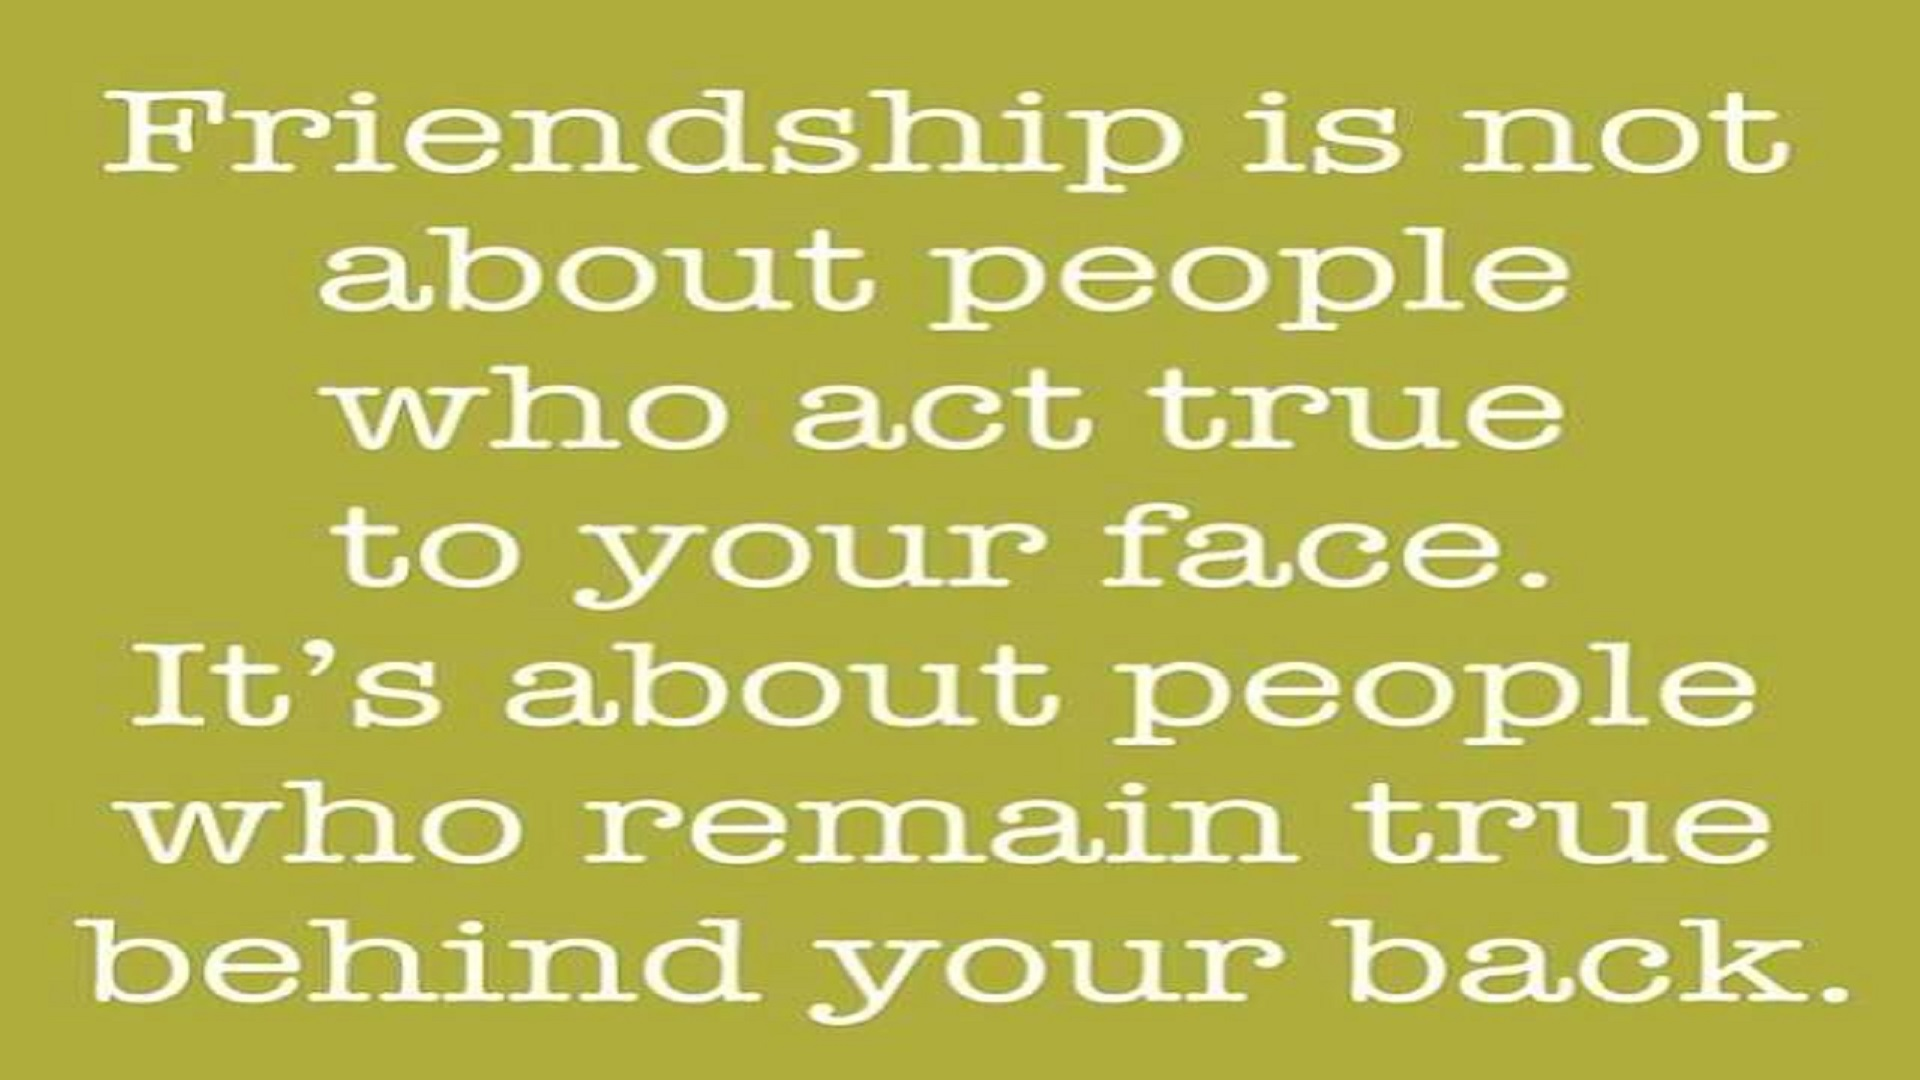 A Quote About Friendship Bestandfunnyfriendshipquotefreehdwallpapers  Hd Wallpaper